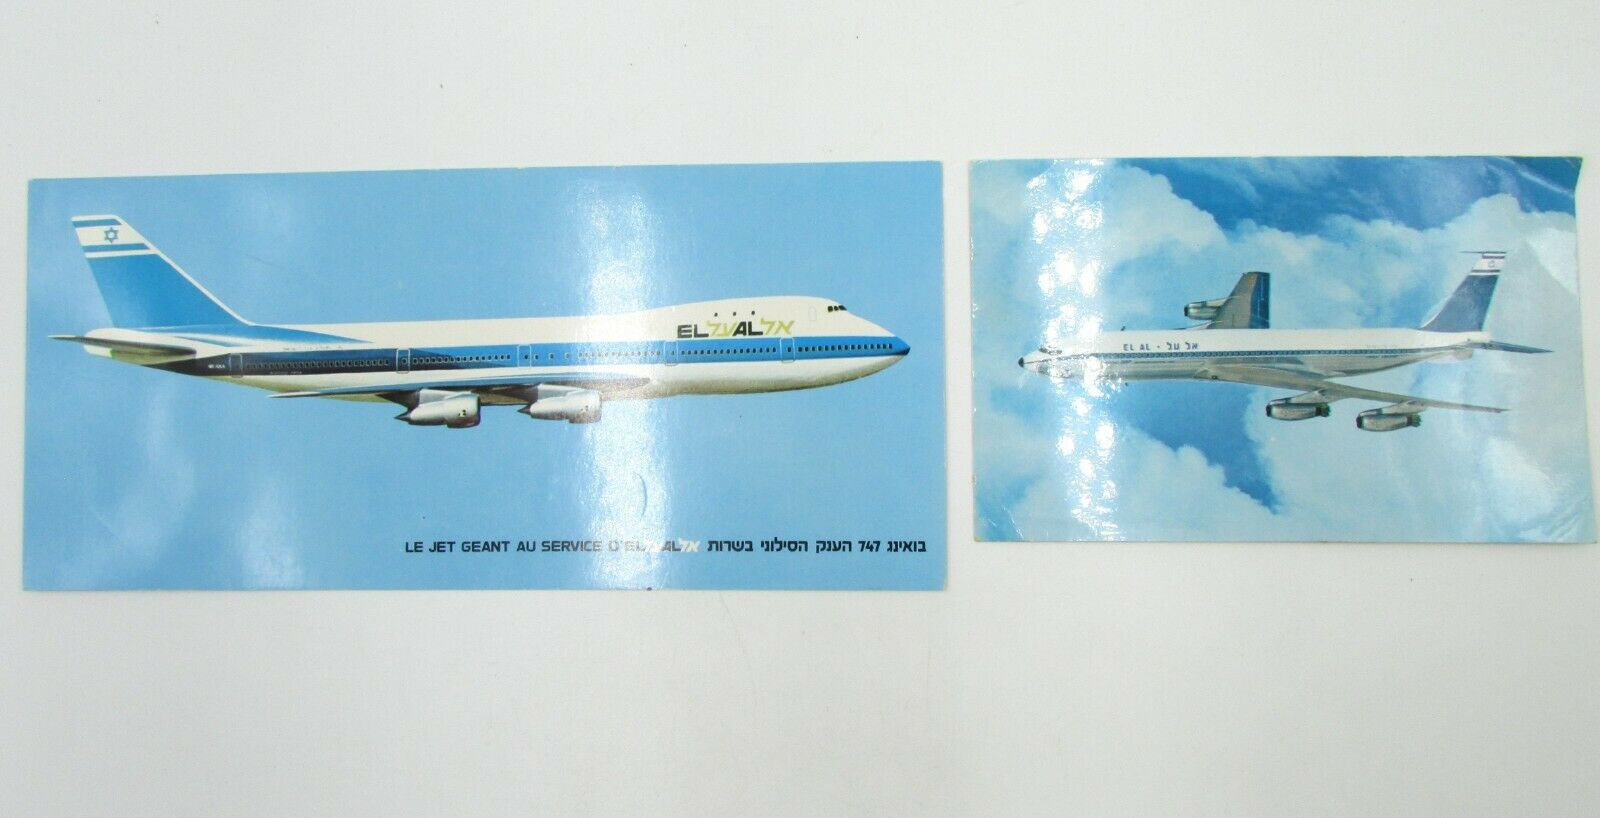 Vintage Airlines 7 Postcards Lot KLM Lufthansa EL-AL Delta Aircrafts Без бренда - фотография #5